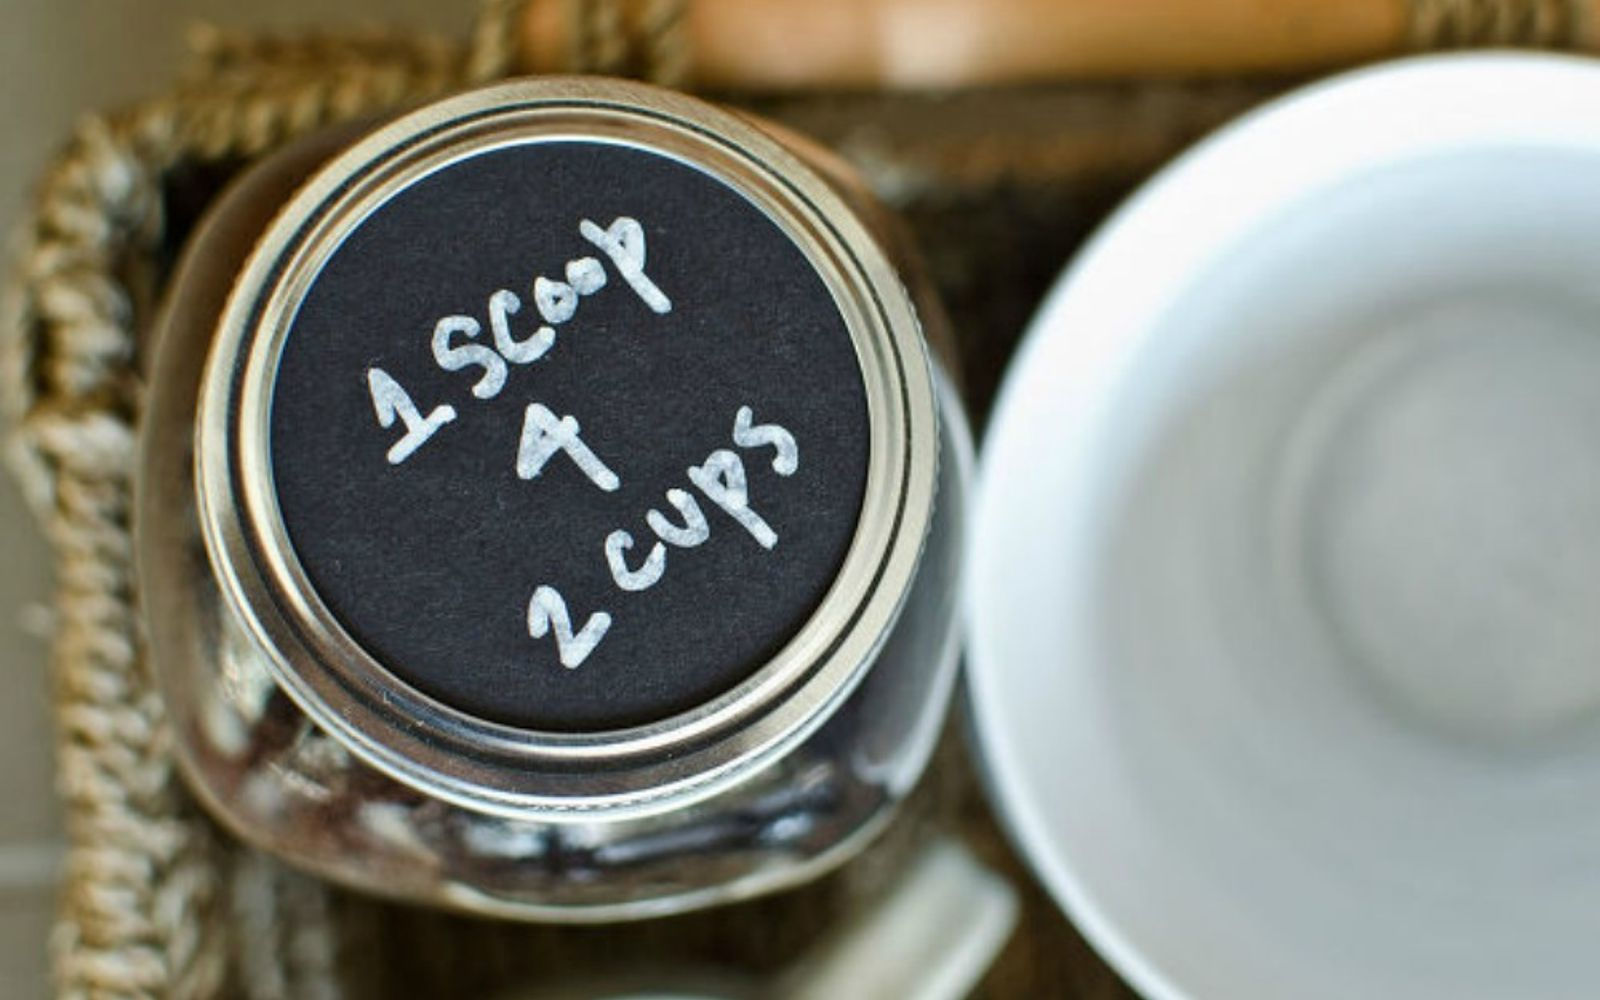 s get rid of kitchen countertop clutter with 13 clever mason jar ideas, countertops, kitchen design, mason jars, organizing, Make it the center of your coffee station